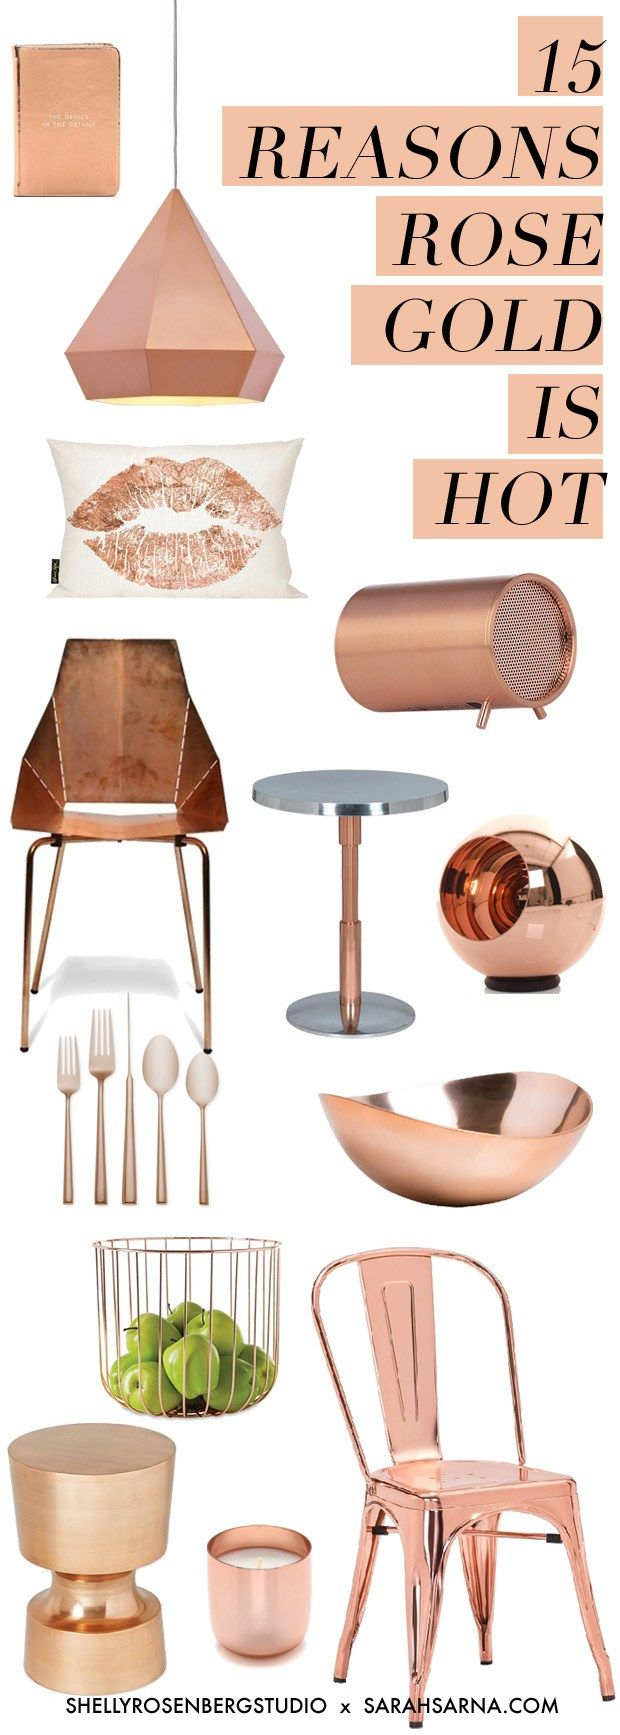 15 Reasons Rose Gold is Hot for the Home